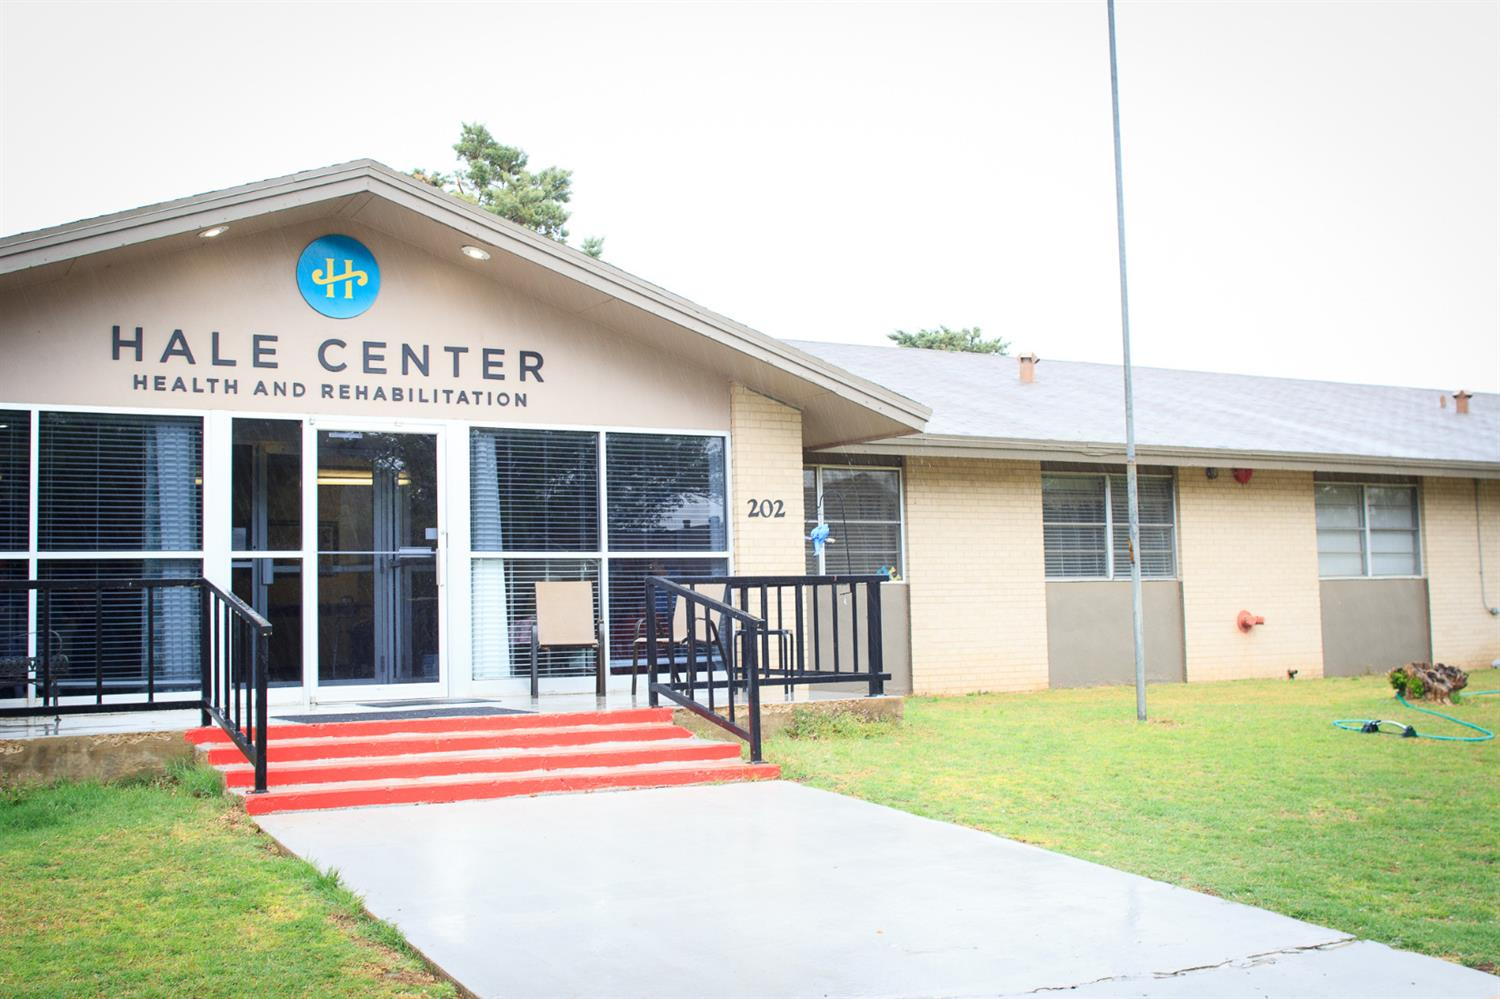 This facility is no longer operating but when the doors were swinging, the Hale Center Health and Rehab was a 44 bed Skilled Nursing and Rehab facility located in Hale Center, Texas. This facility would be a perfect solution for people in the area in need of short-term Rehab and Skilled Nursing. It would also be a great location for a medical clinic, geriatric care, substance abuse or apartment living - just to name a few. Over $300,000 in recent improvements. Property also includes the old Hale Center Hospital. Seller would consider a lease.